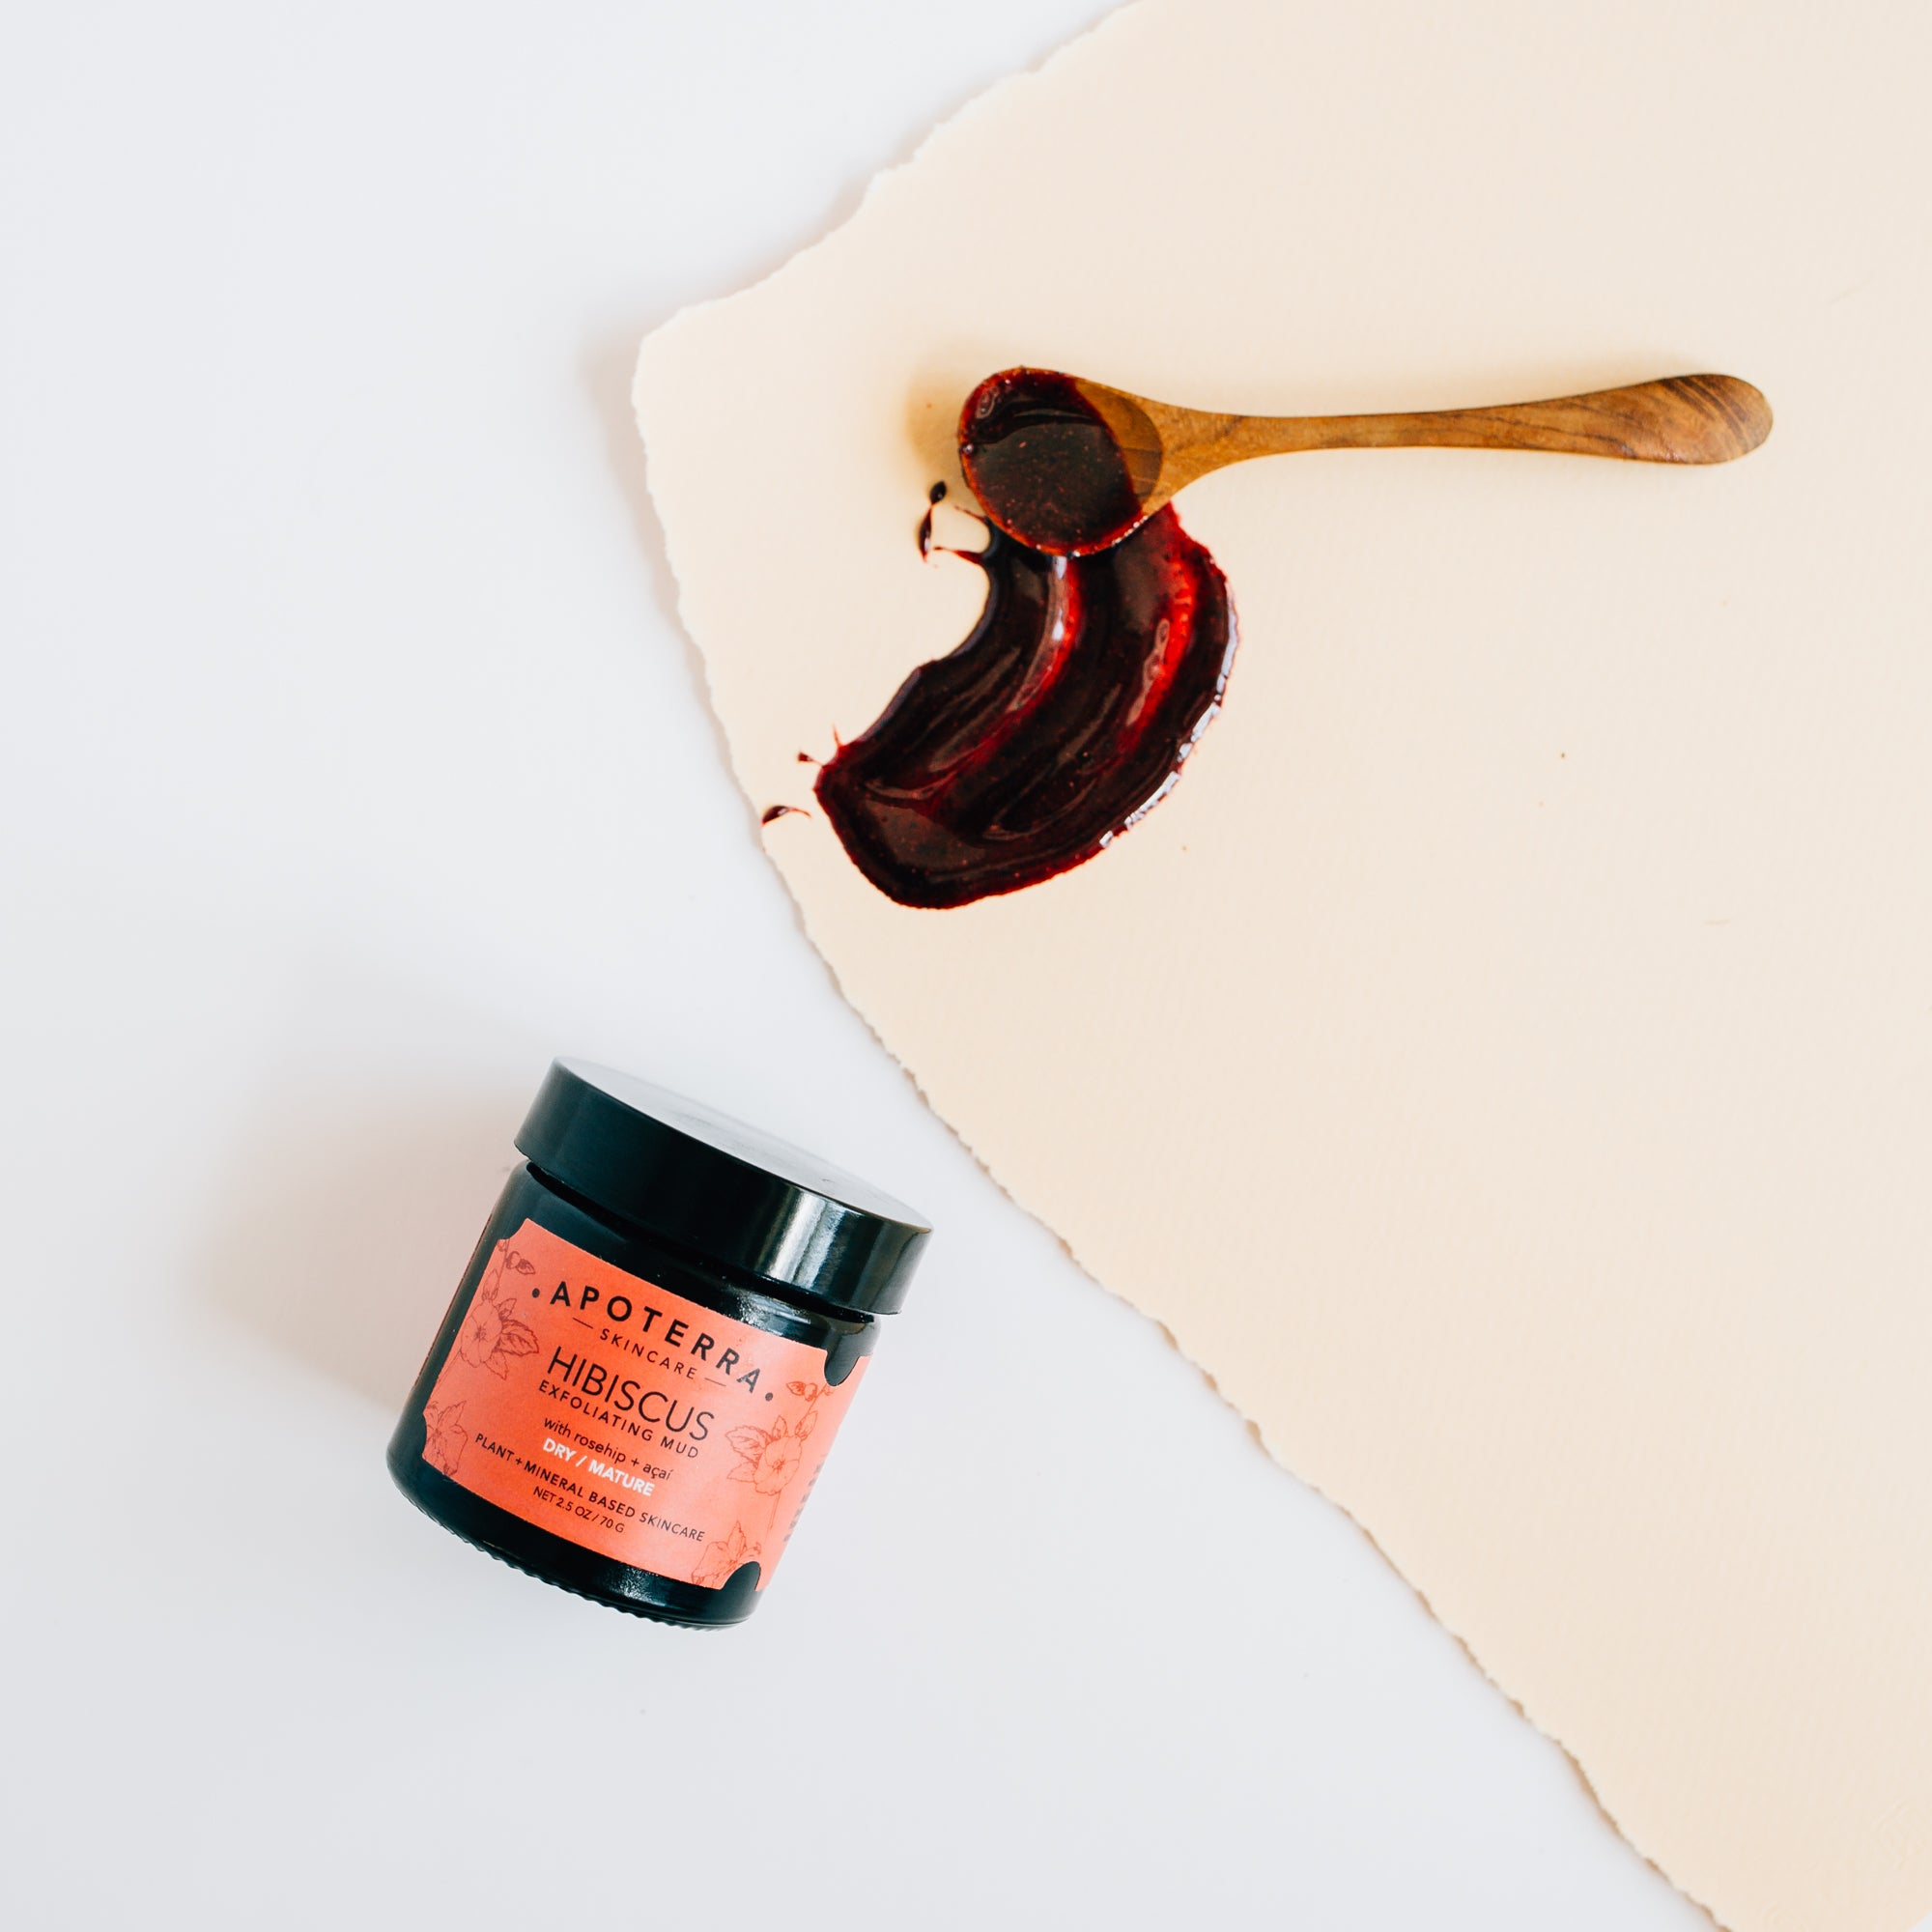 hibiscus exfoliating mud with spoon